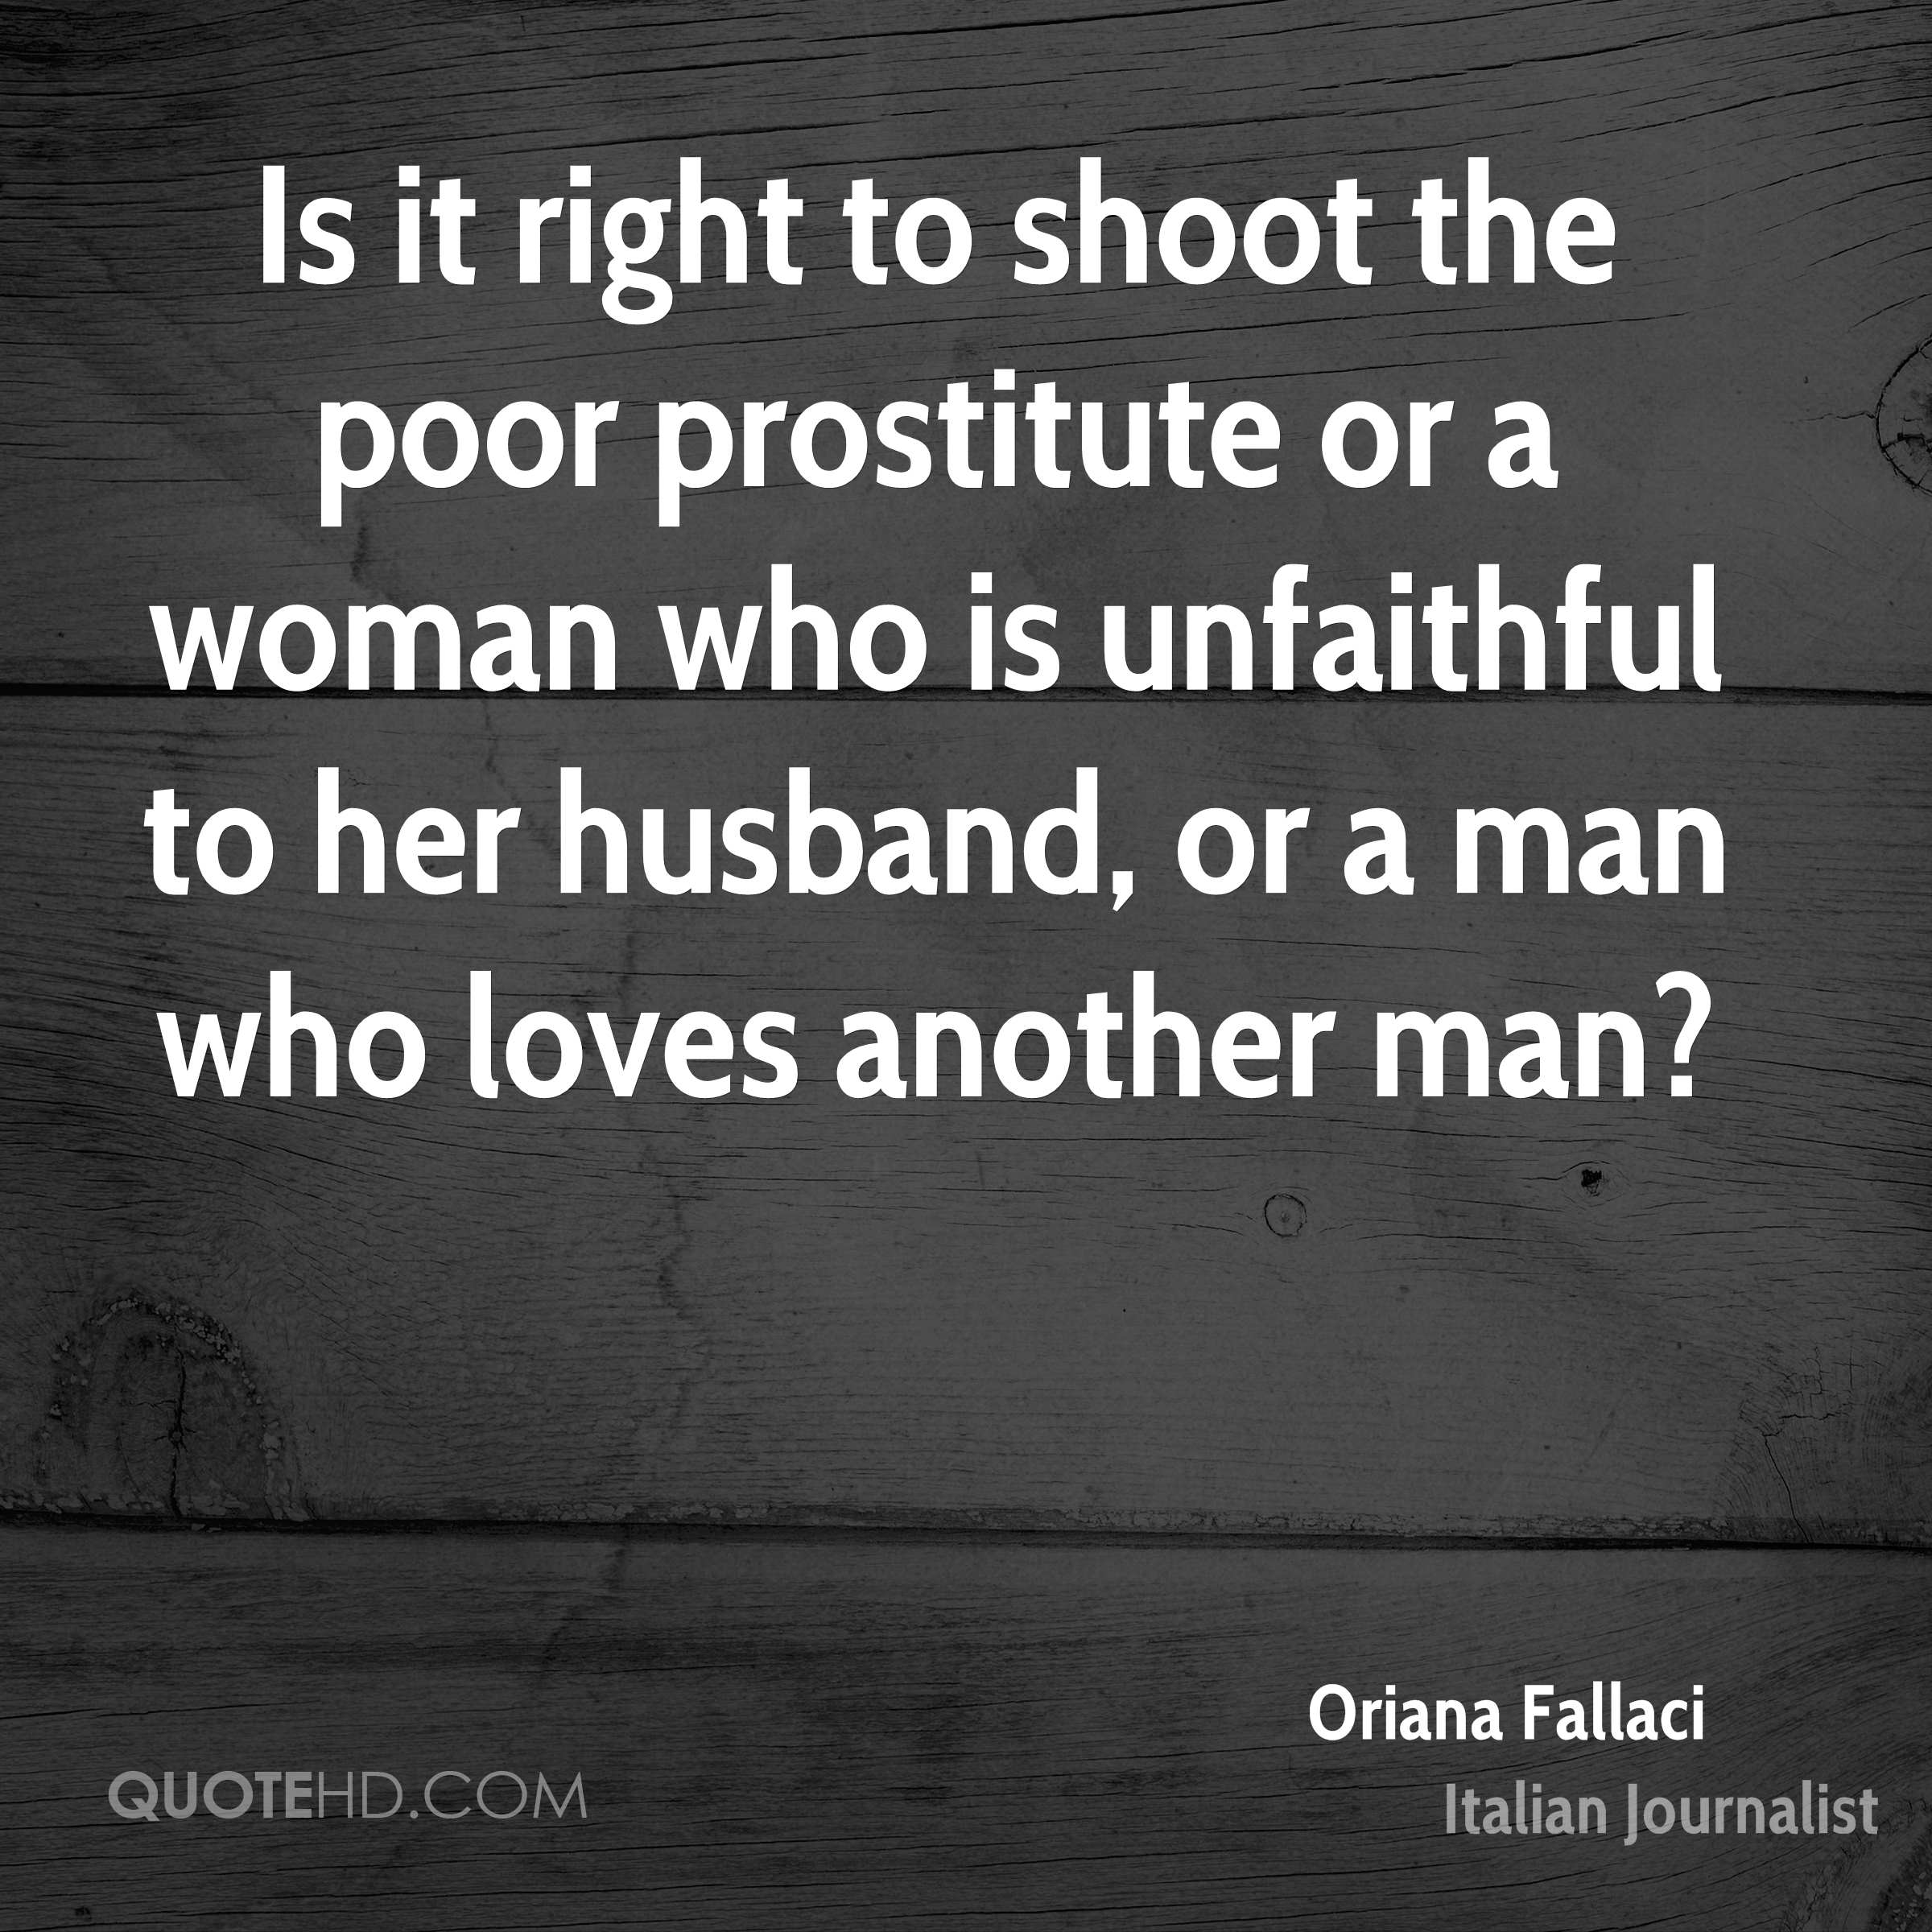 Is it right to shoot the poor prostitute or a woman who is unfaithful to her husband, or a man who loves another man?